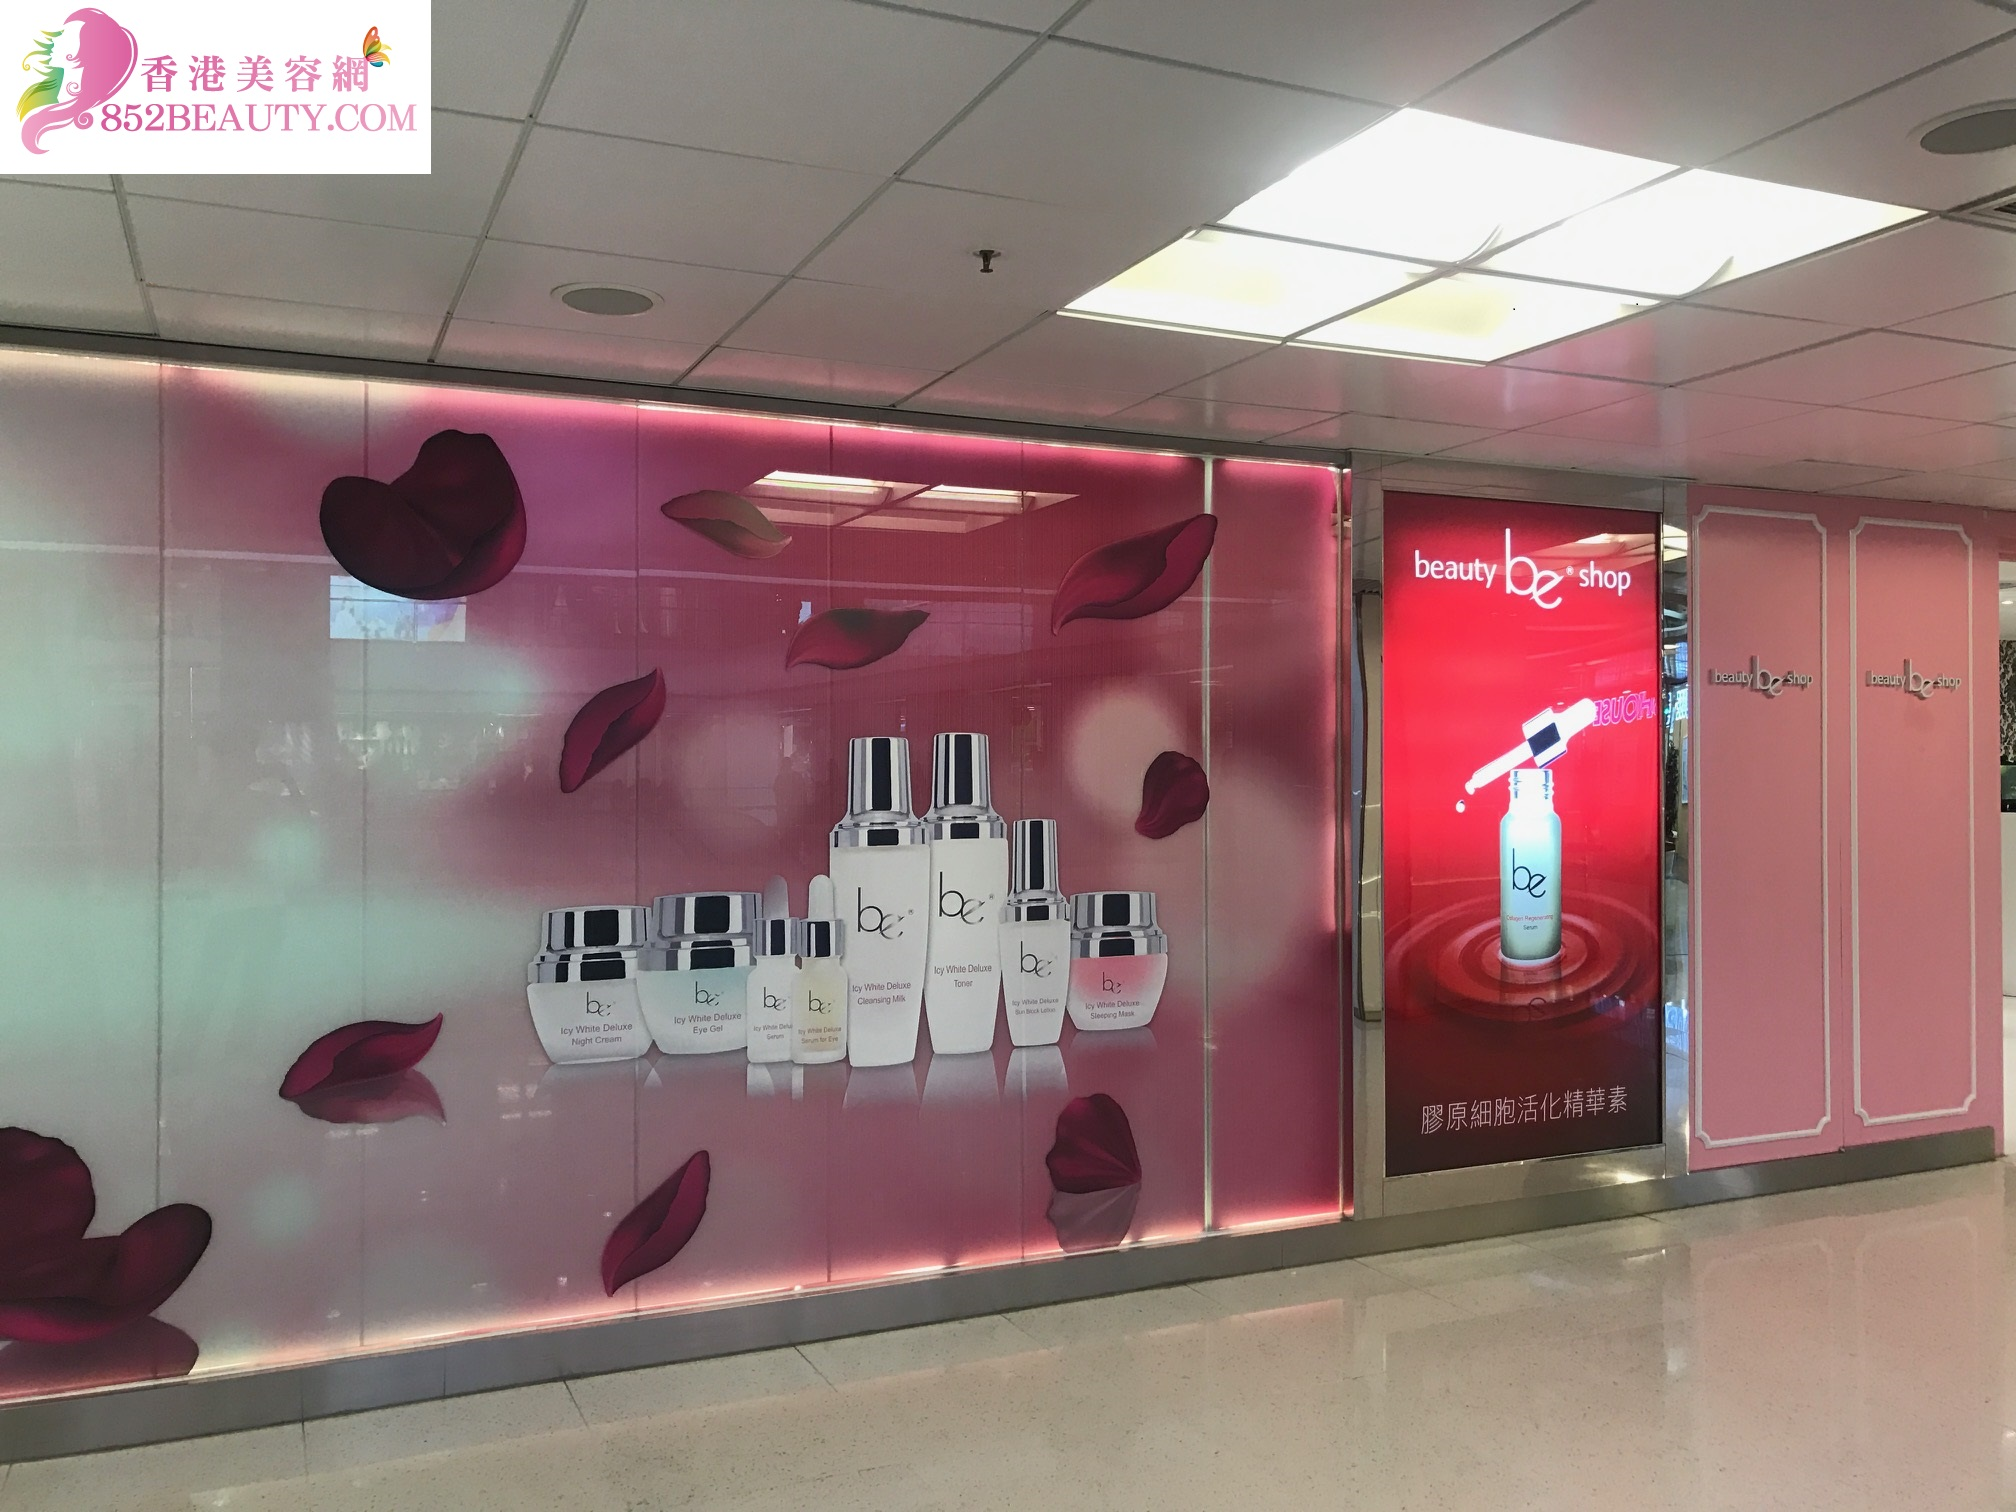 美容院: Beauty Be Shop (深水埗)